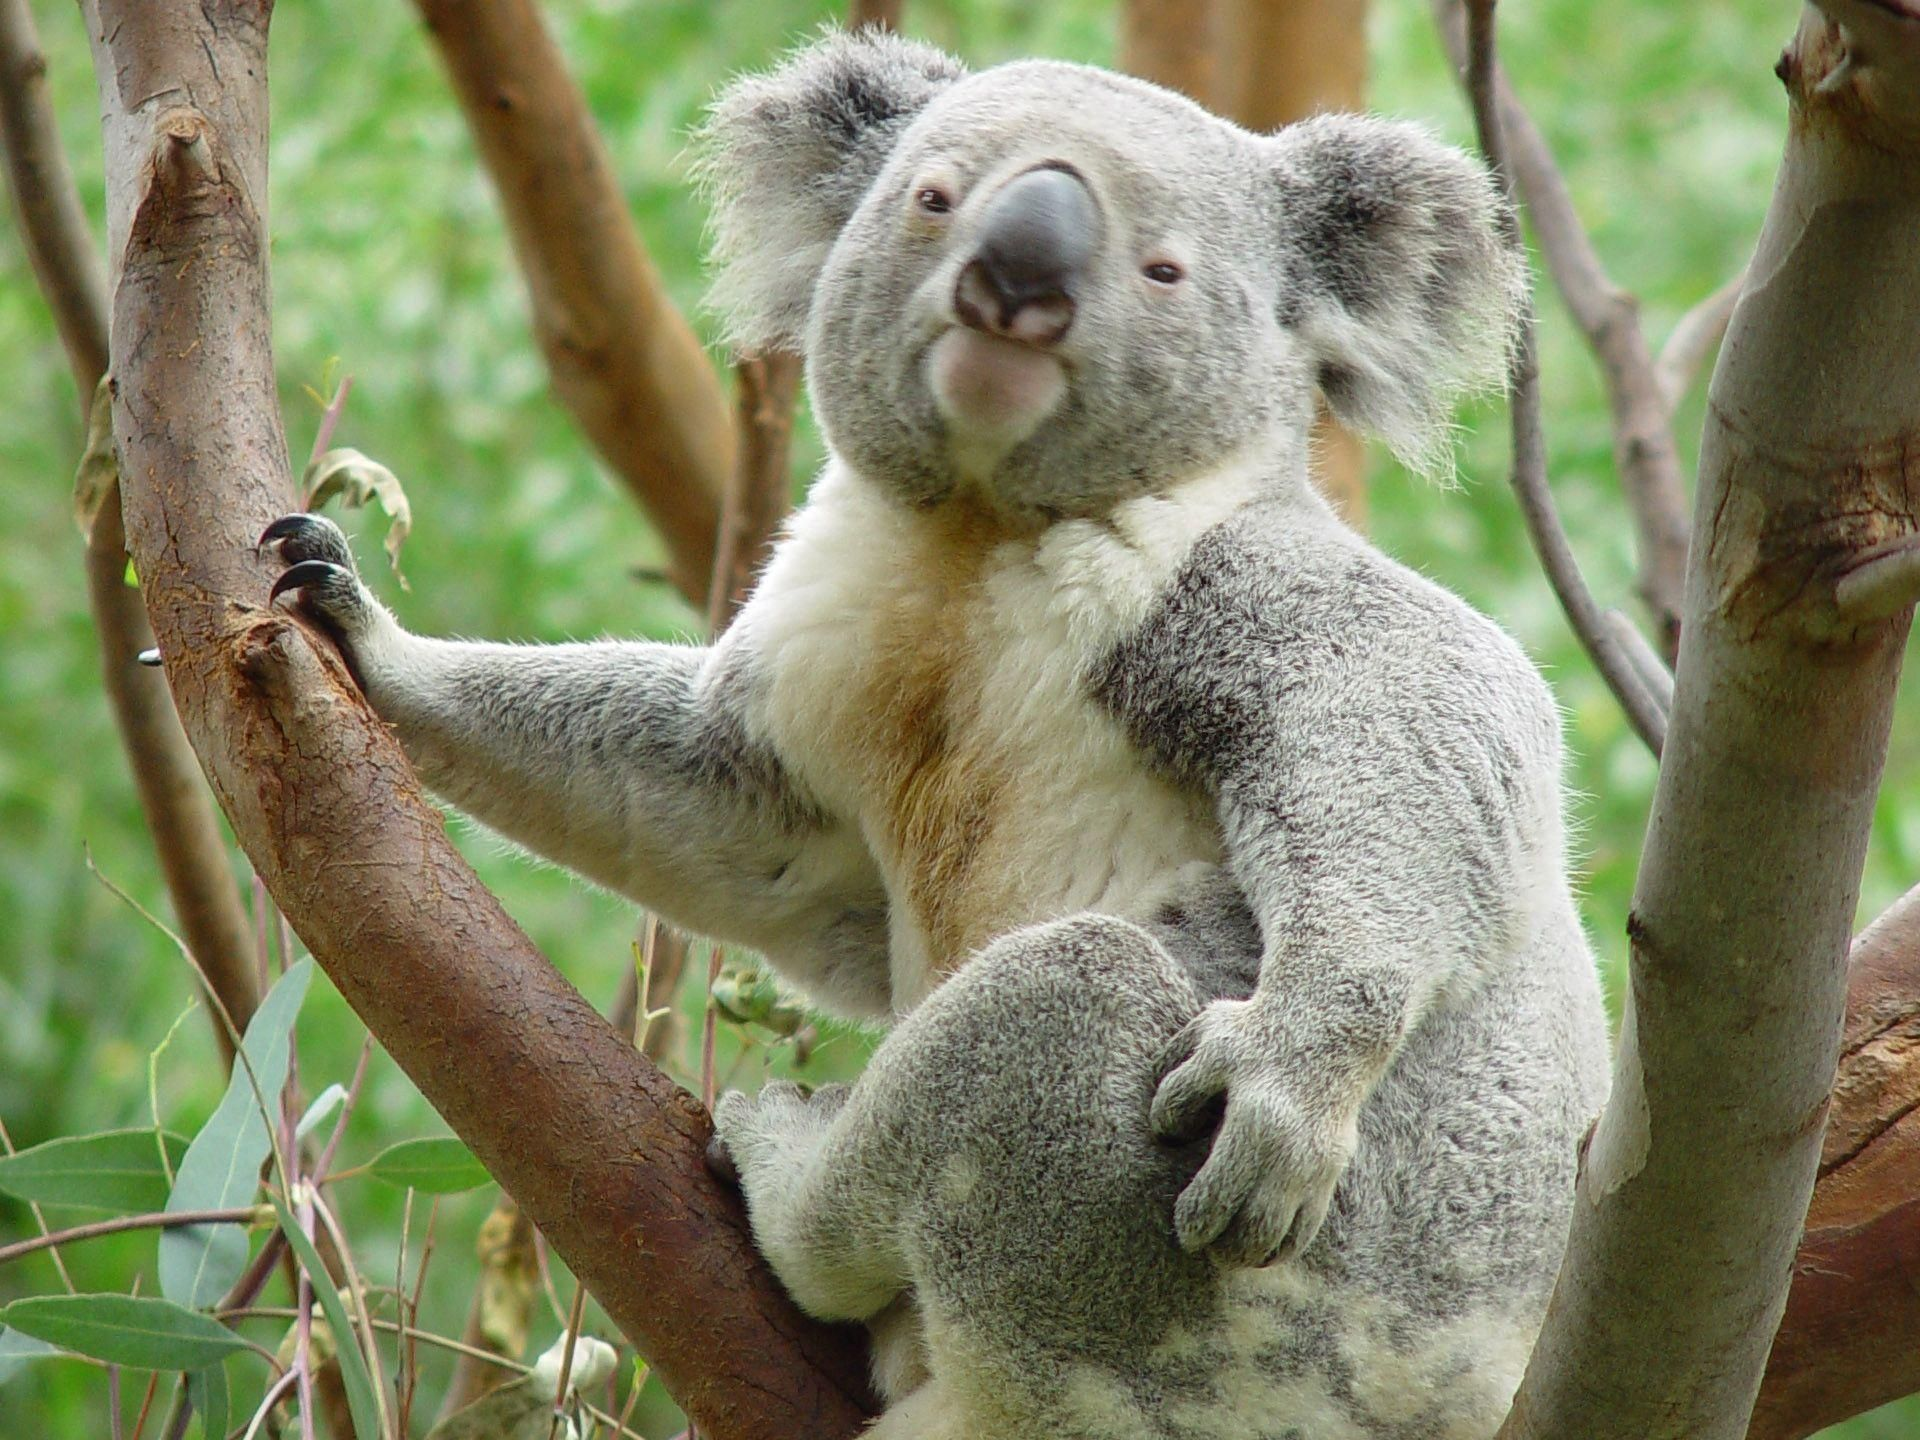 Koala Hd Wallpapers And Backgrounds 38 Http Www Urdunewtrend Com Hd Wallpapers Animal Koala Koala Hd Wallpapers And Backgrounds 38 Koala Bear Koala Koalas